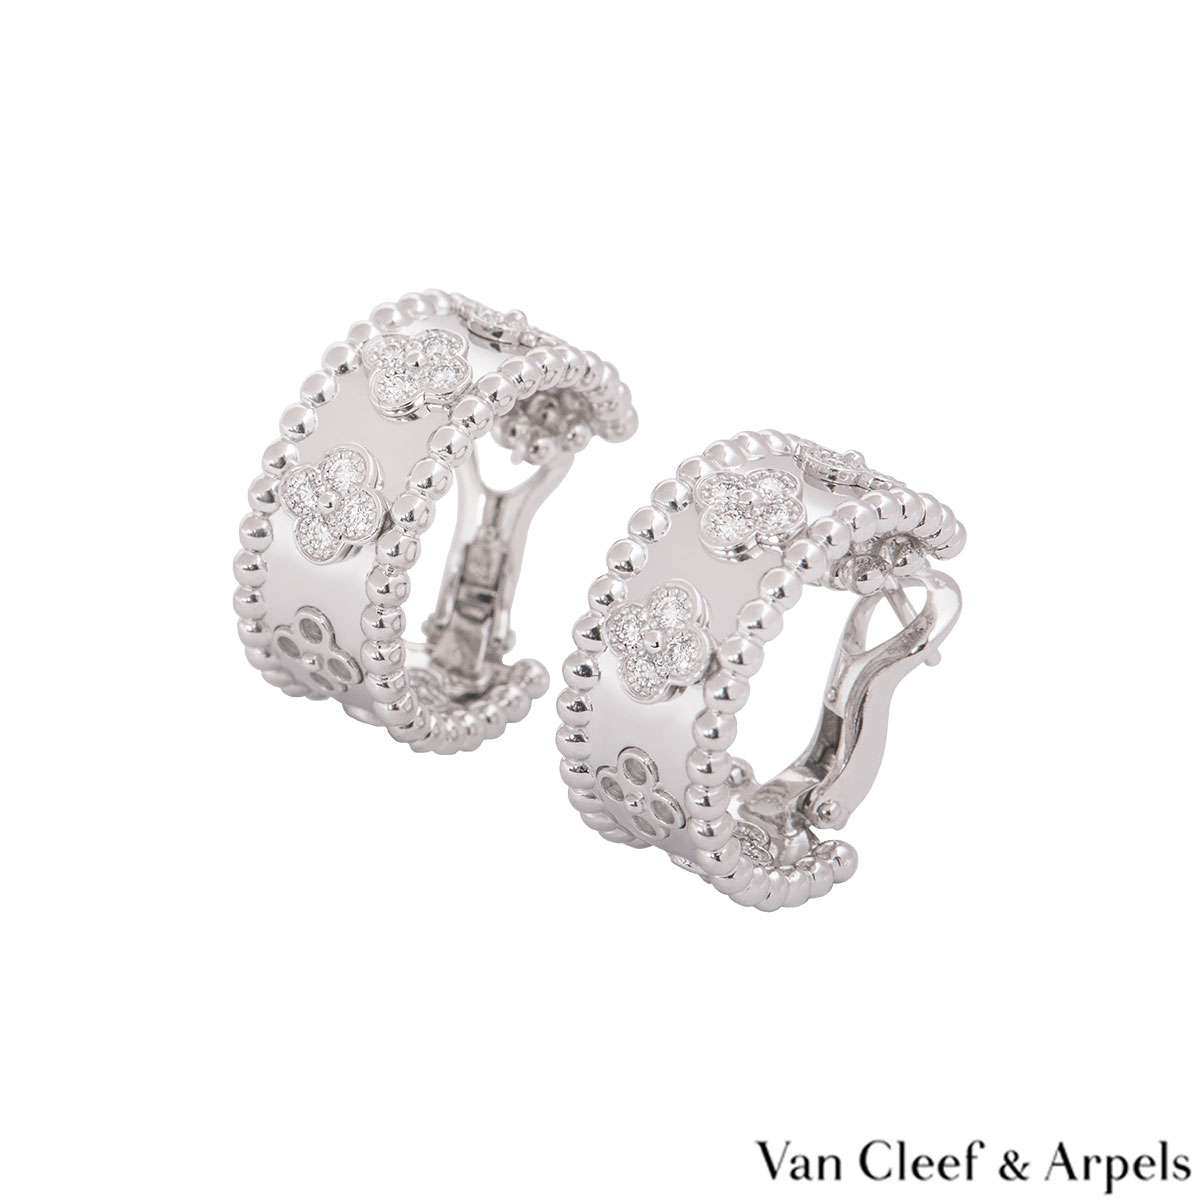 Van Cleef & Arpels White Gold Perlée Clovers Earrings VCARO2ML00